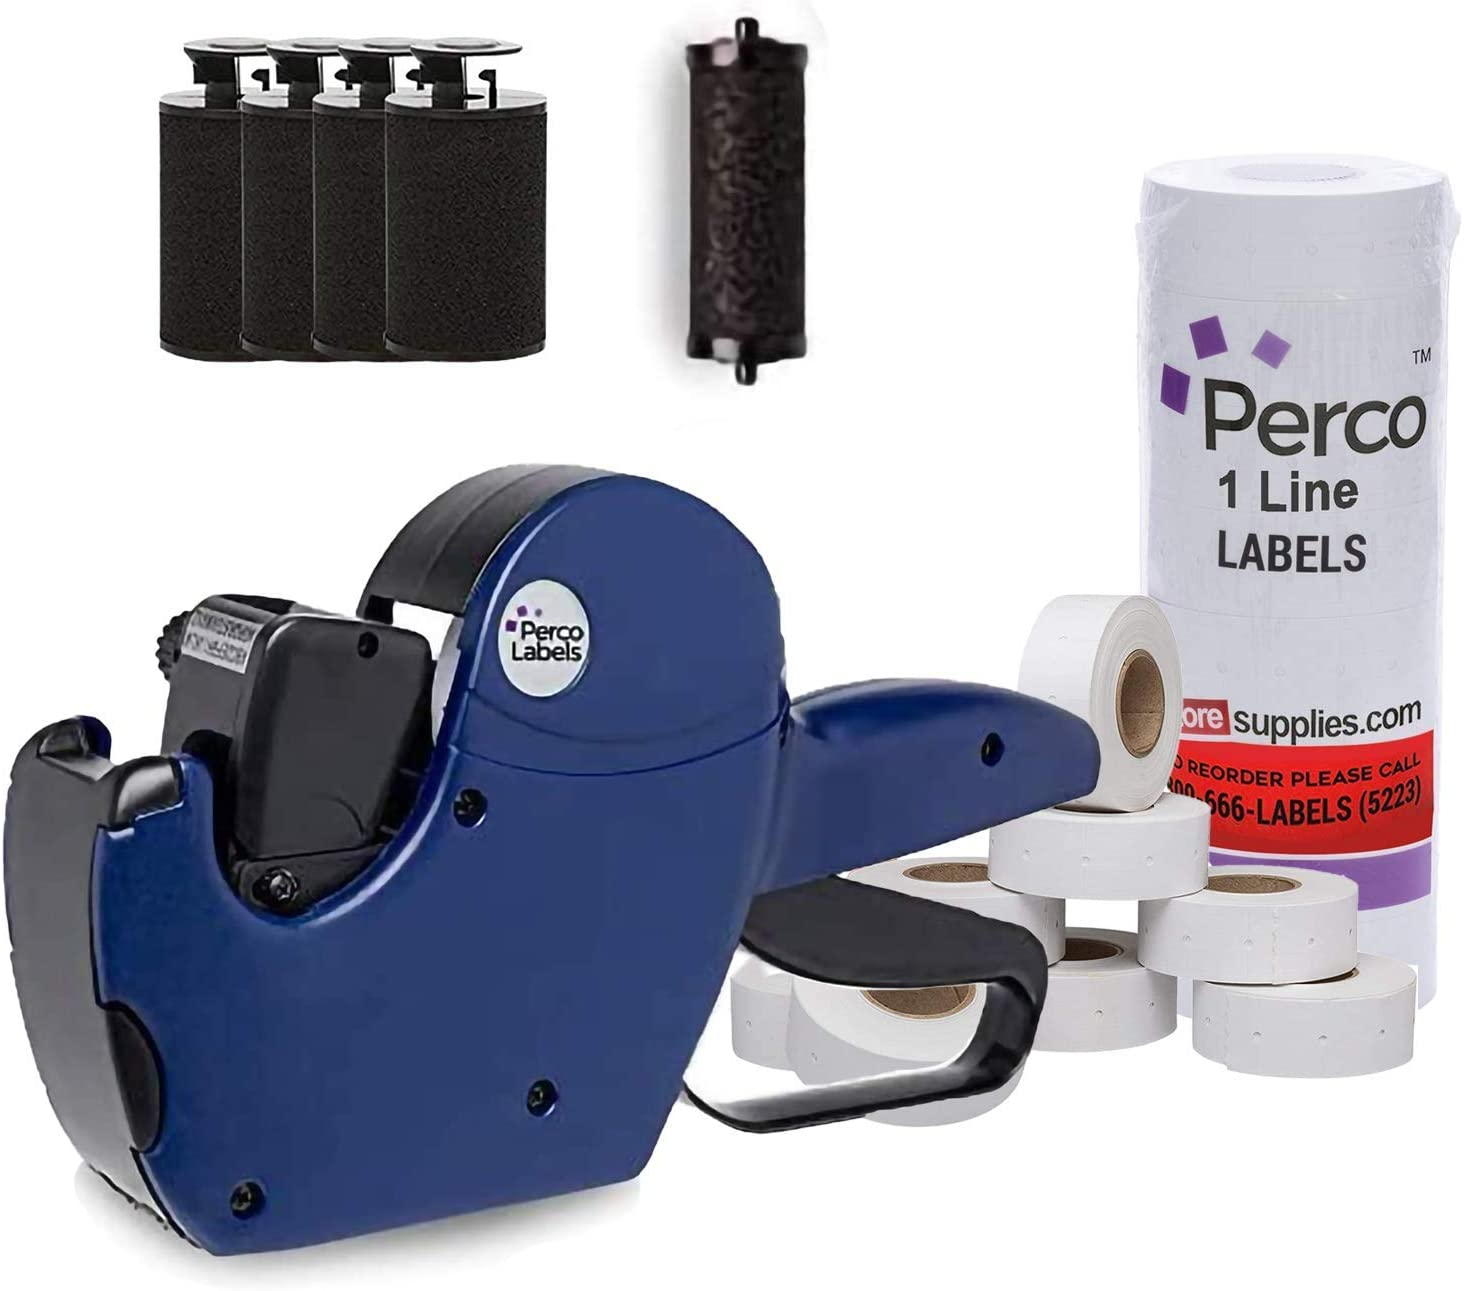 Perco 1 Line Price Gun with 8,000 1 Line White Labels and 4 Inkers